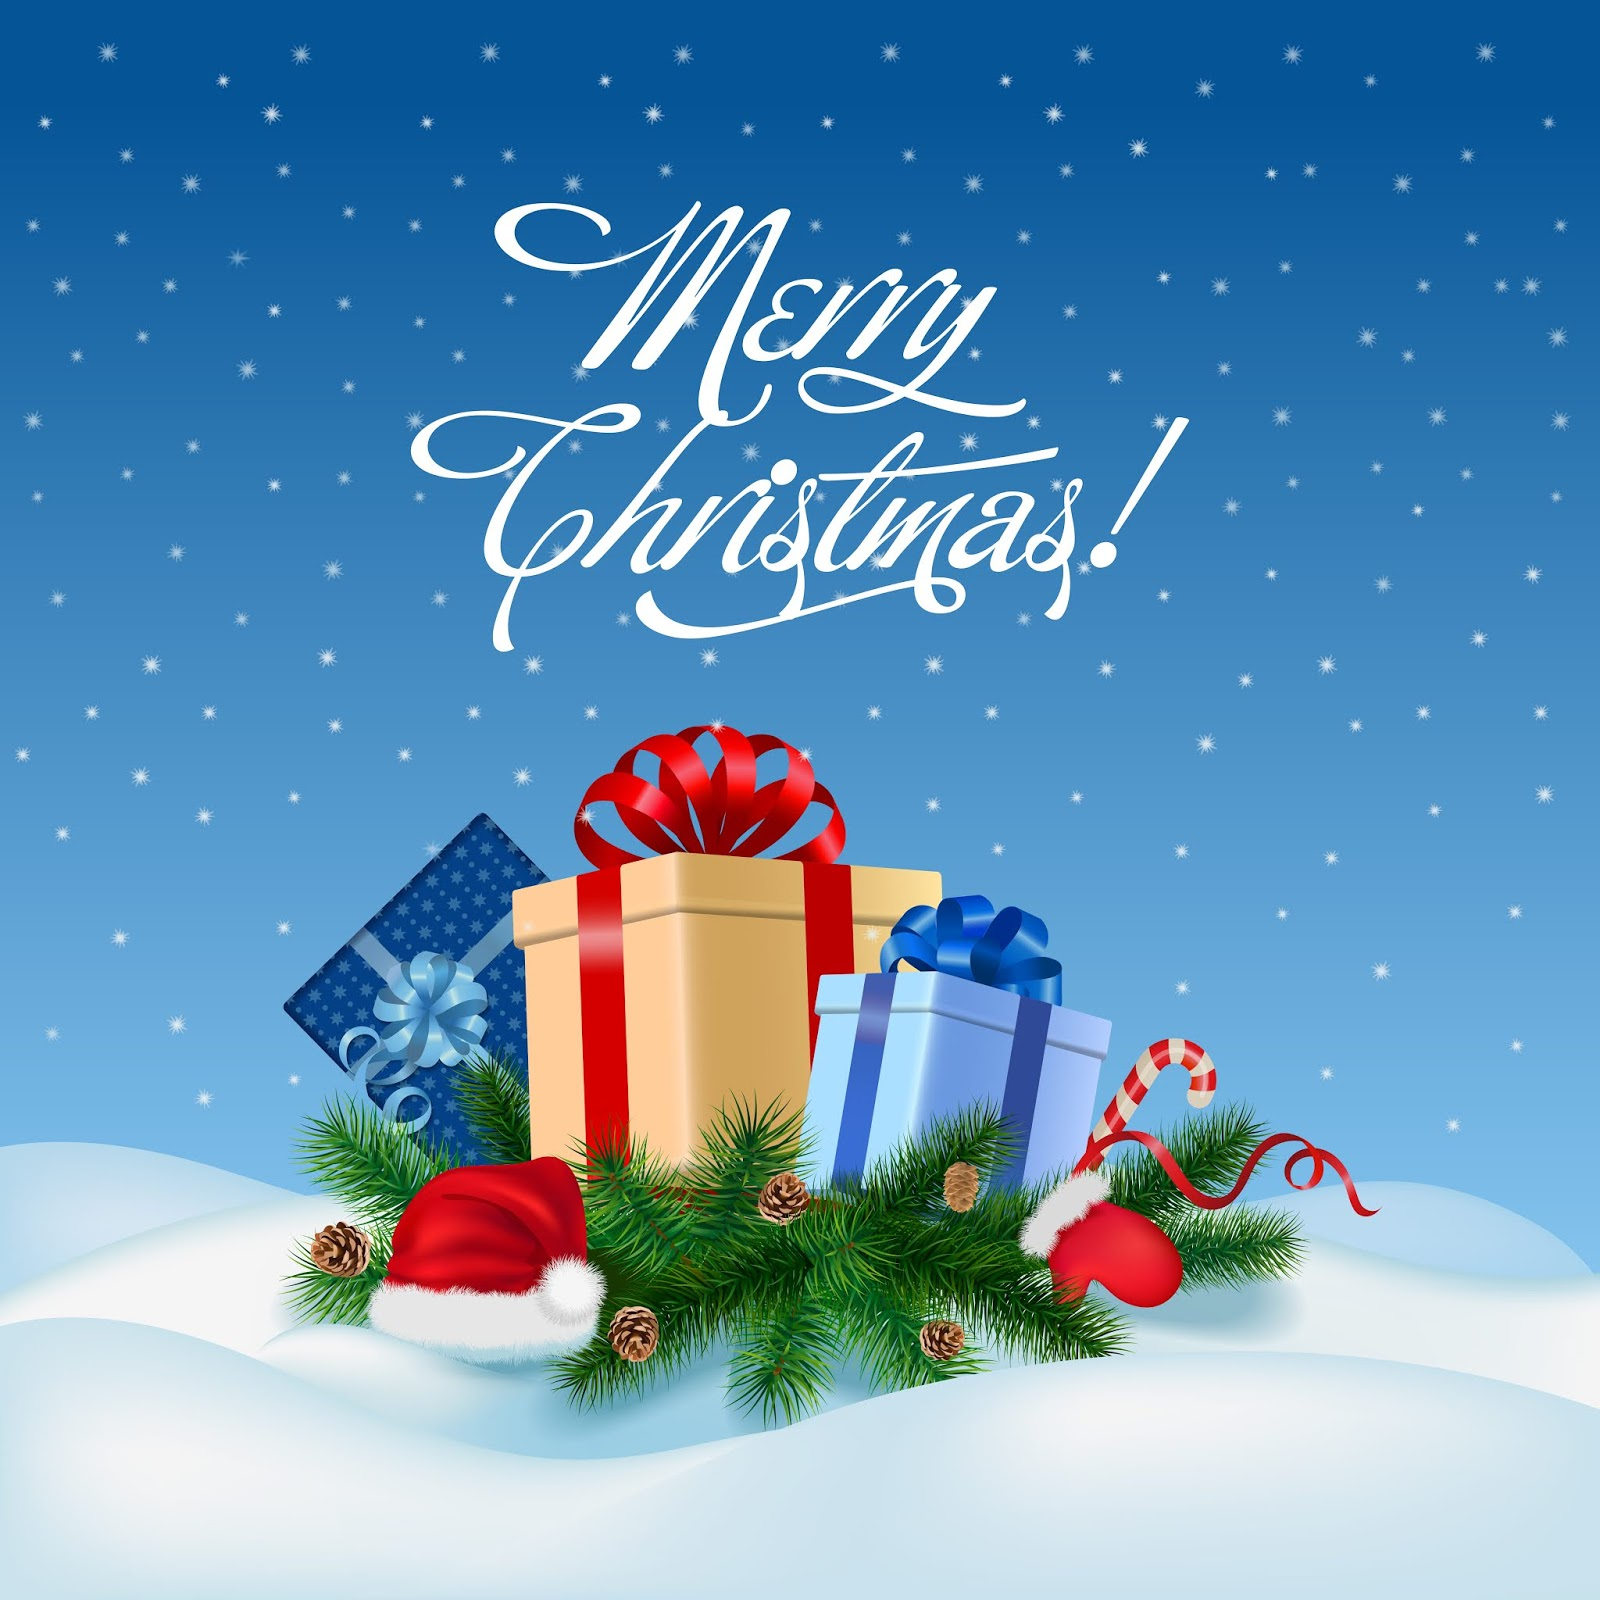 Merry Christmas Frame With Ginger Bread Violet Ground Free Download Vector CDR, AI, EPS and PNG Formats